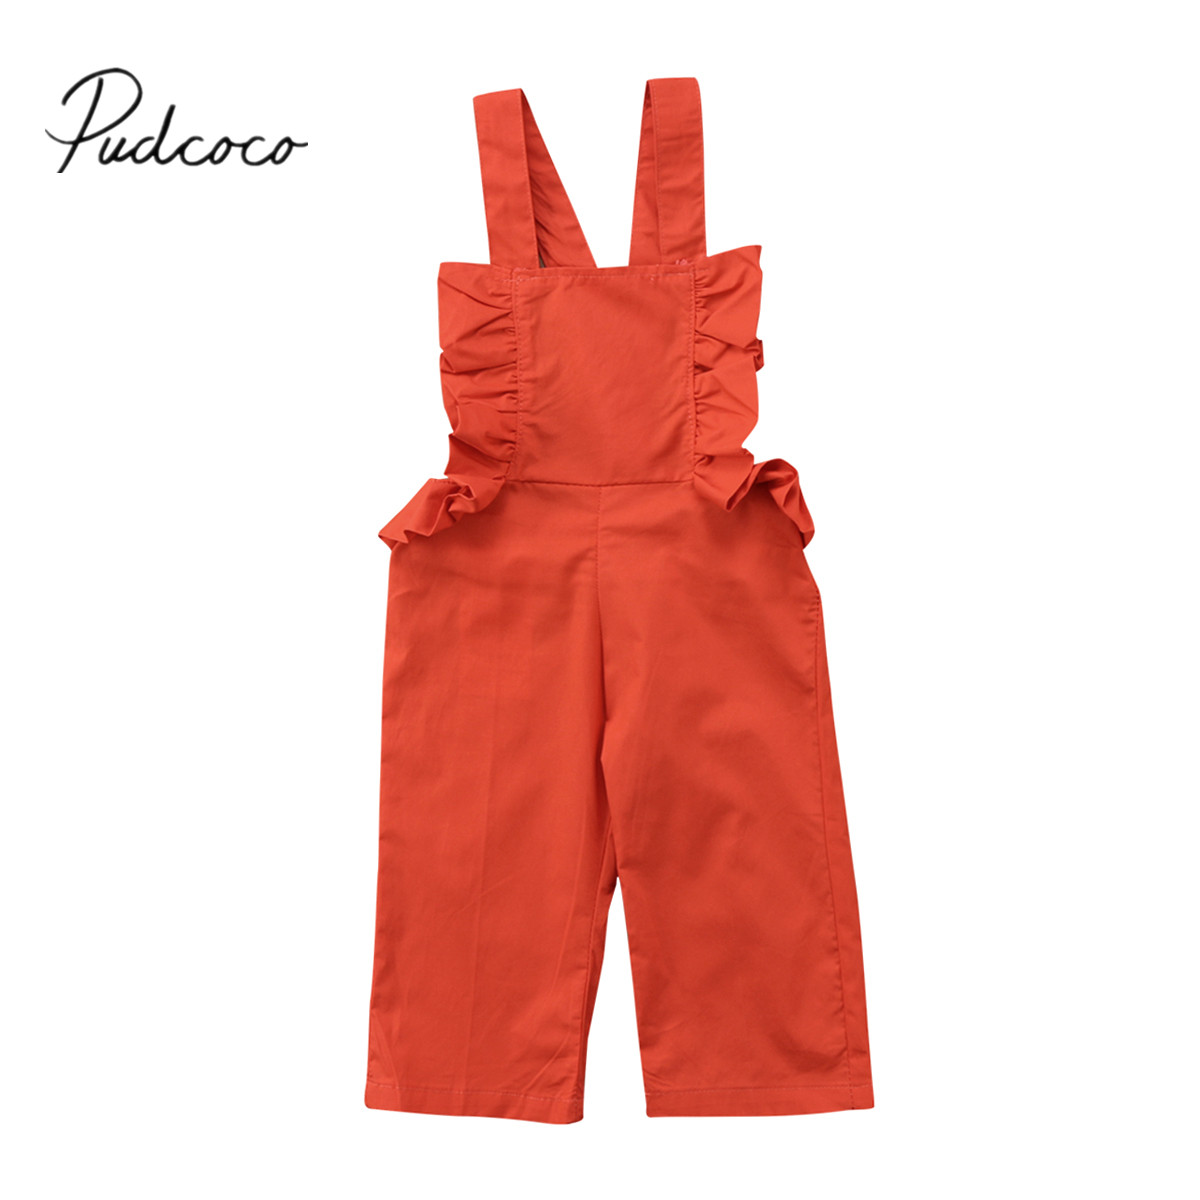 2018 Brand New Toddler Infant Child Kid Baby Girls Wide Leg Trousers Strap Jumpsuit   Romper   Backless Sunsuit Ruffled Outfit 1-6T